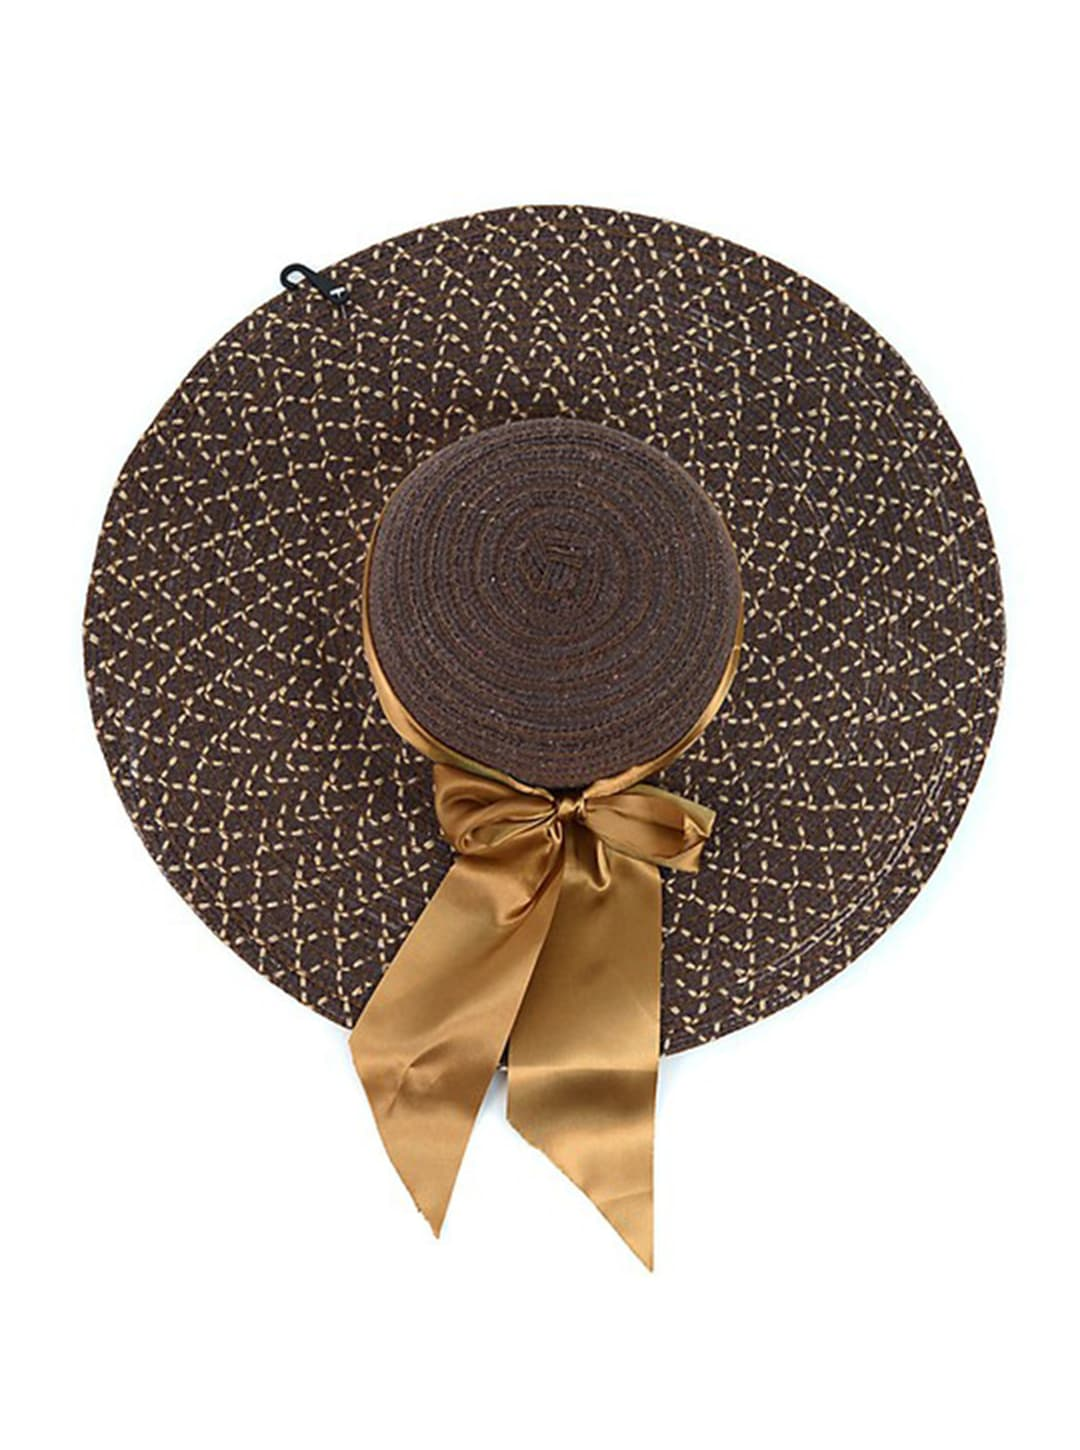 Brown Floppy Hat W/ Bow - Brown - Back